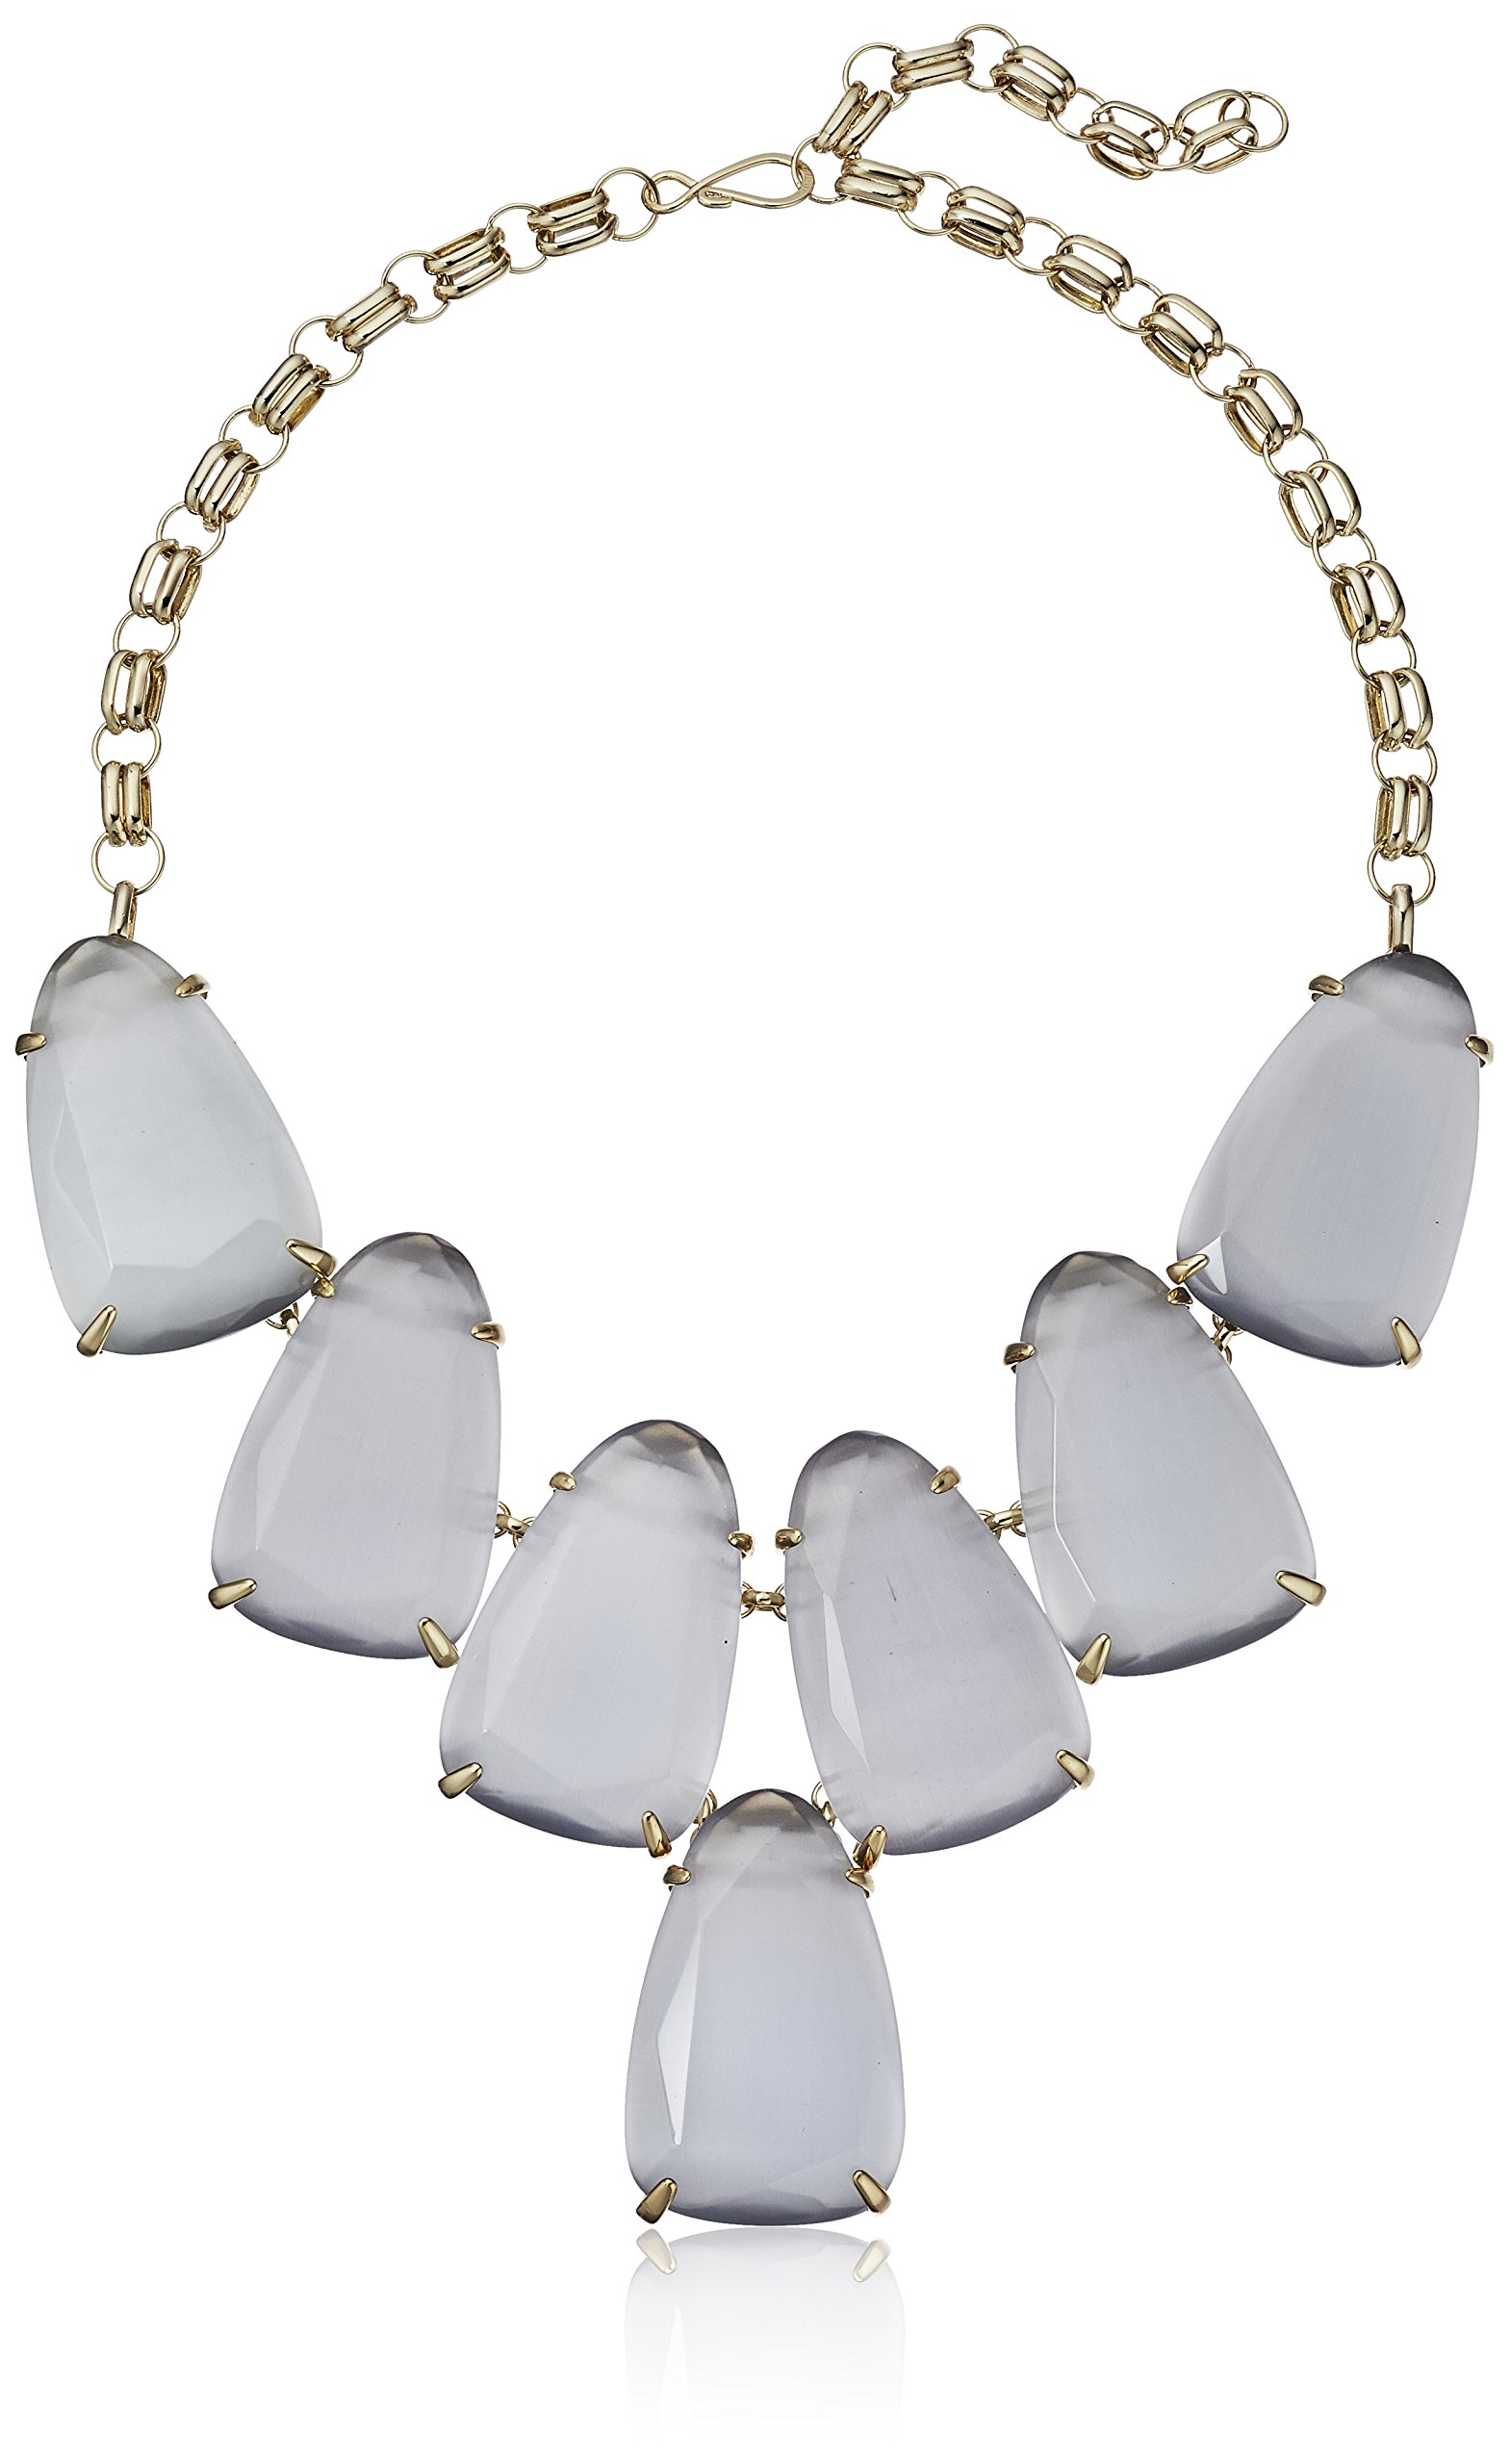 Kendra Scott ''Signature'' Harlow Gold plated Slate Glass Statement Necklace, 20''